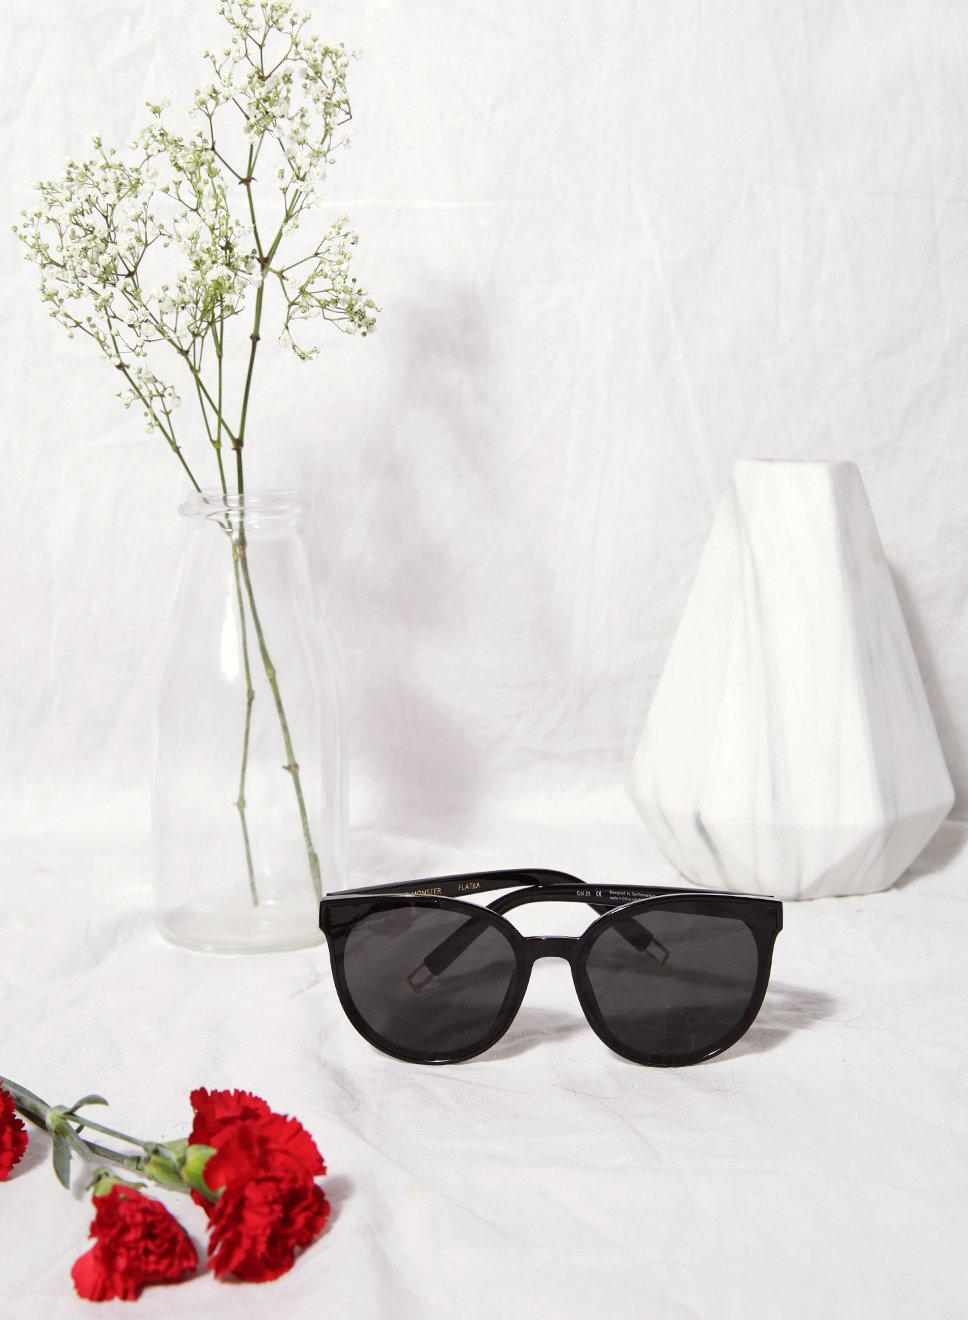 Hallie Round Framed Sunnies at $ 25.00 only sold at And Well Dressed Online Fashion Store Singapore